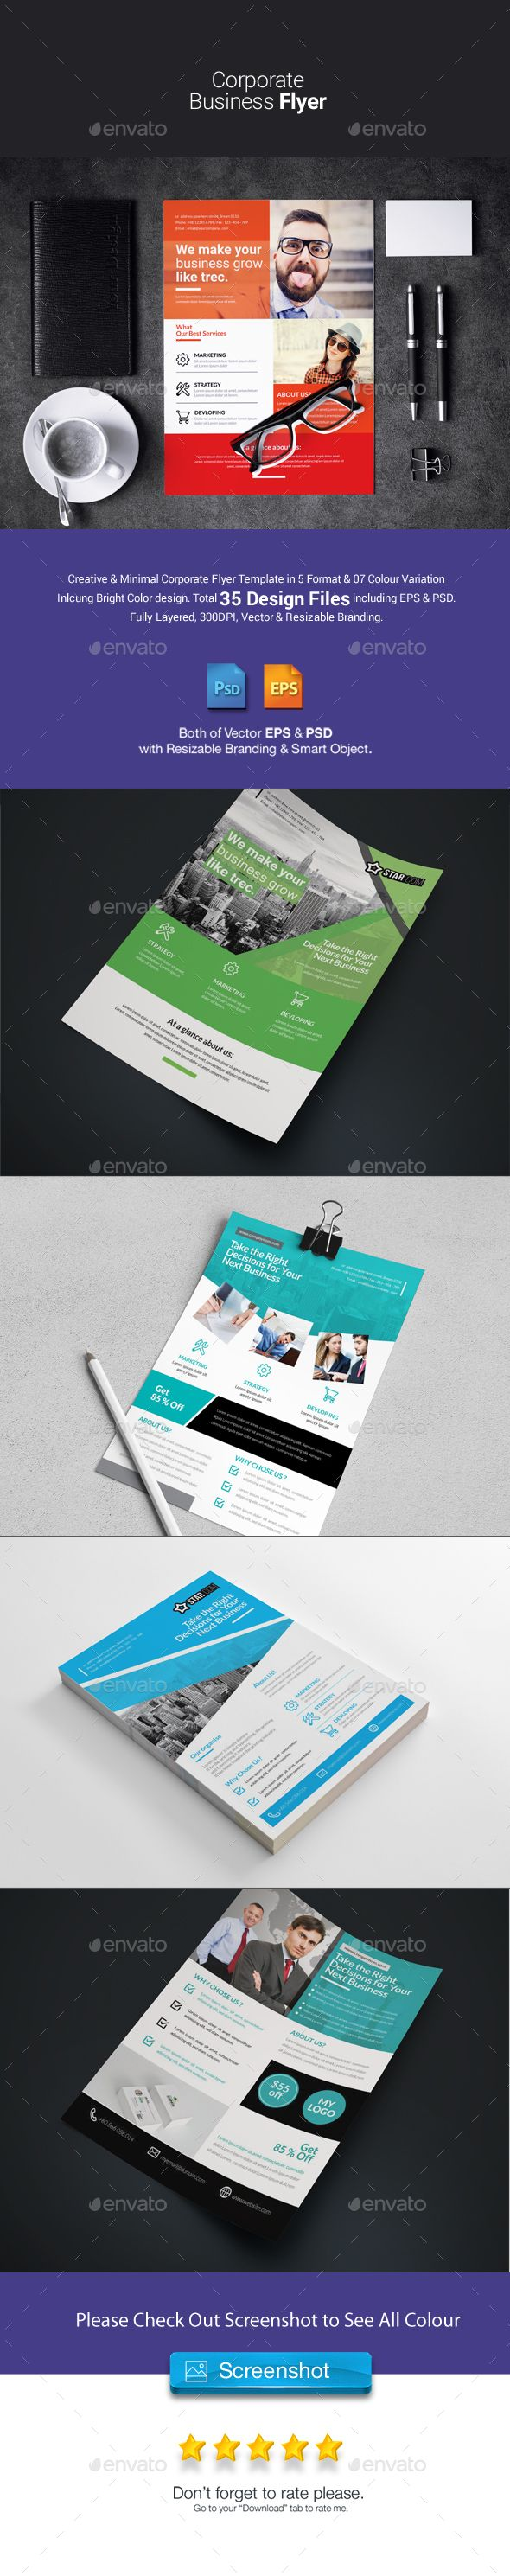 Corporate Flyer Bundle 5 in 1 - Templates PSD, Vector EPS